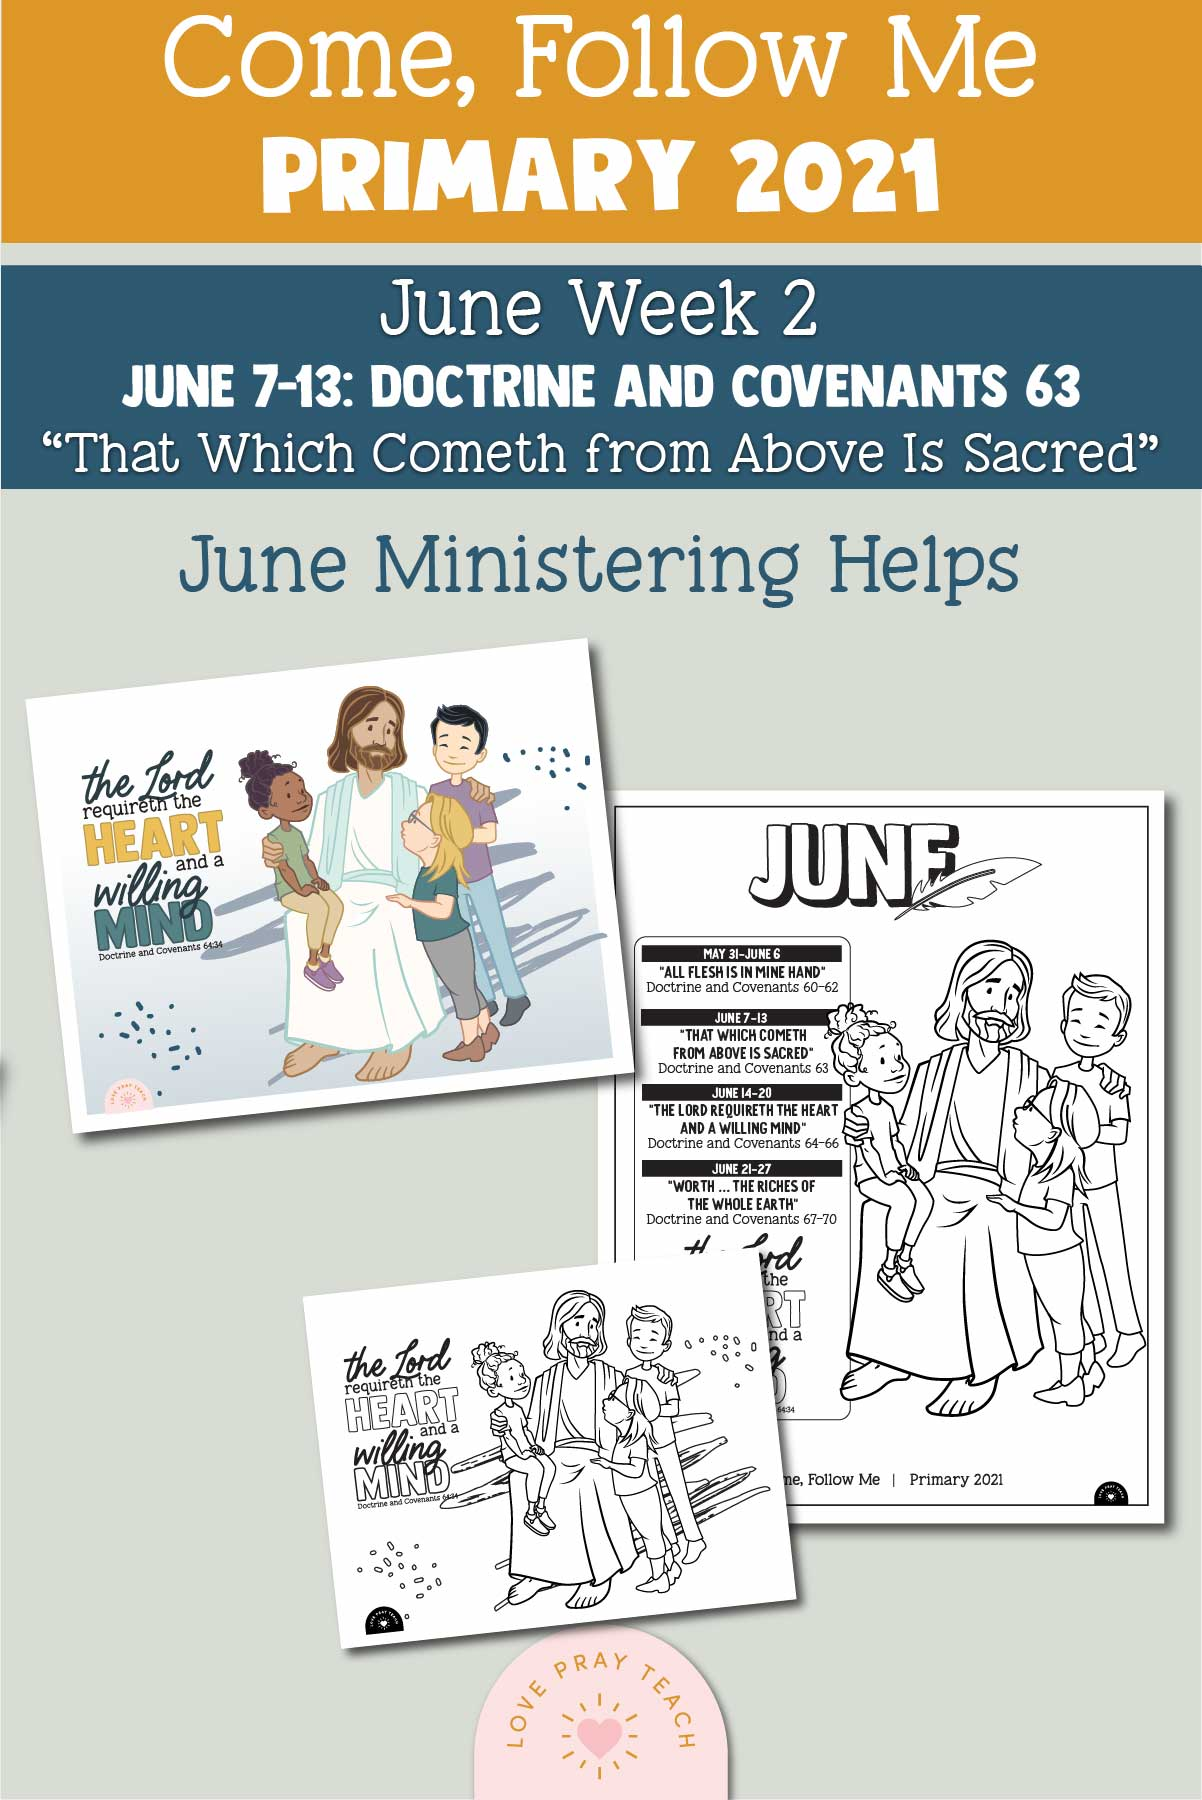 """Come, Follow Me for Primary 2021 June Week 2 Doctrine and Covenants 63 """"That Which Cometh from Above Is Sacred"""" Printable Lesson Materials"""